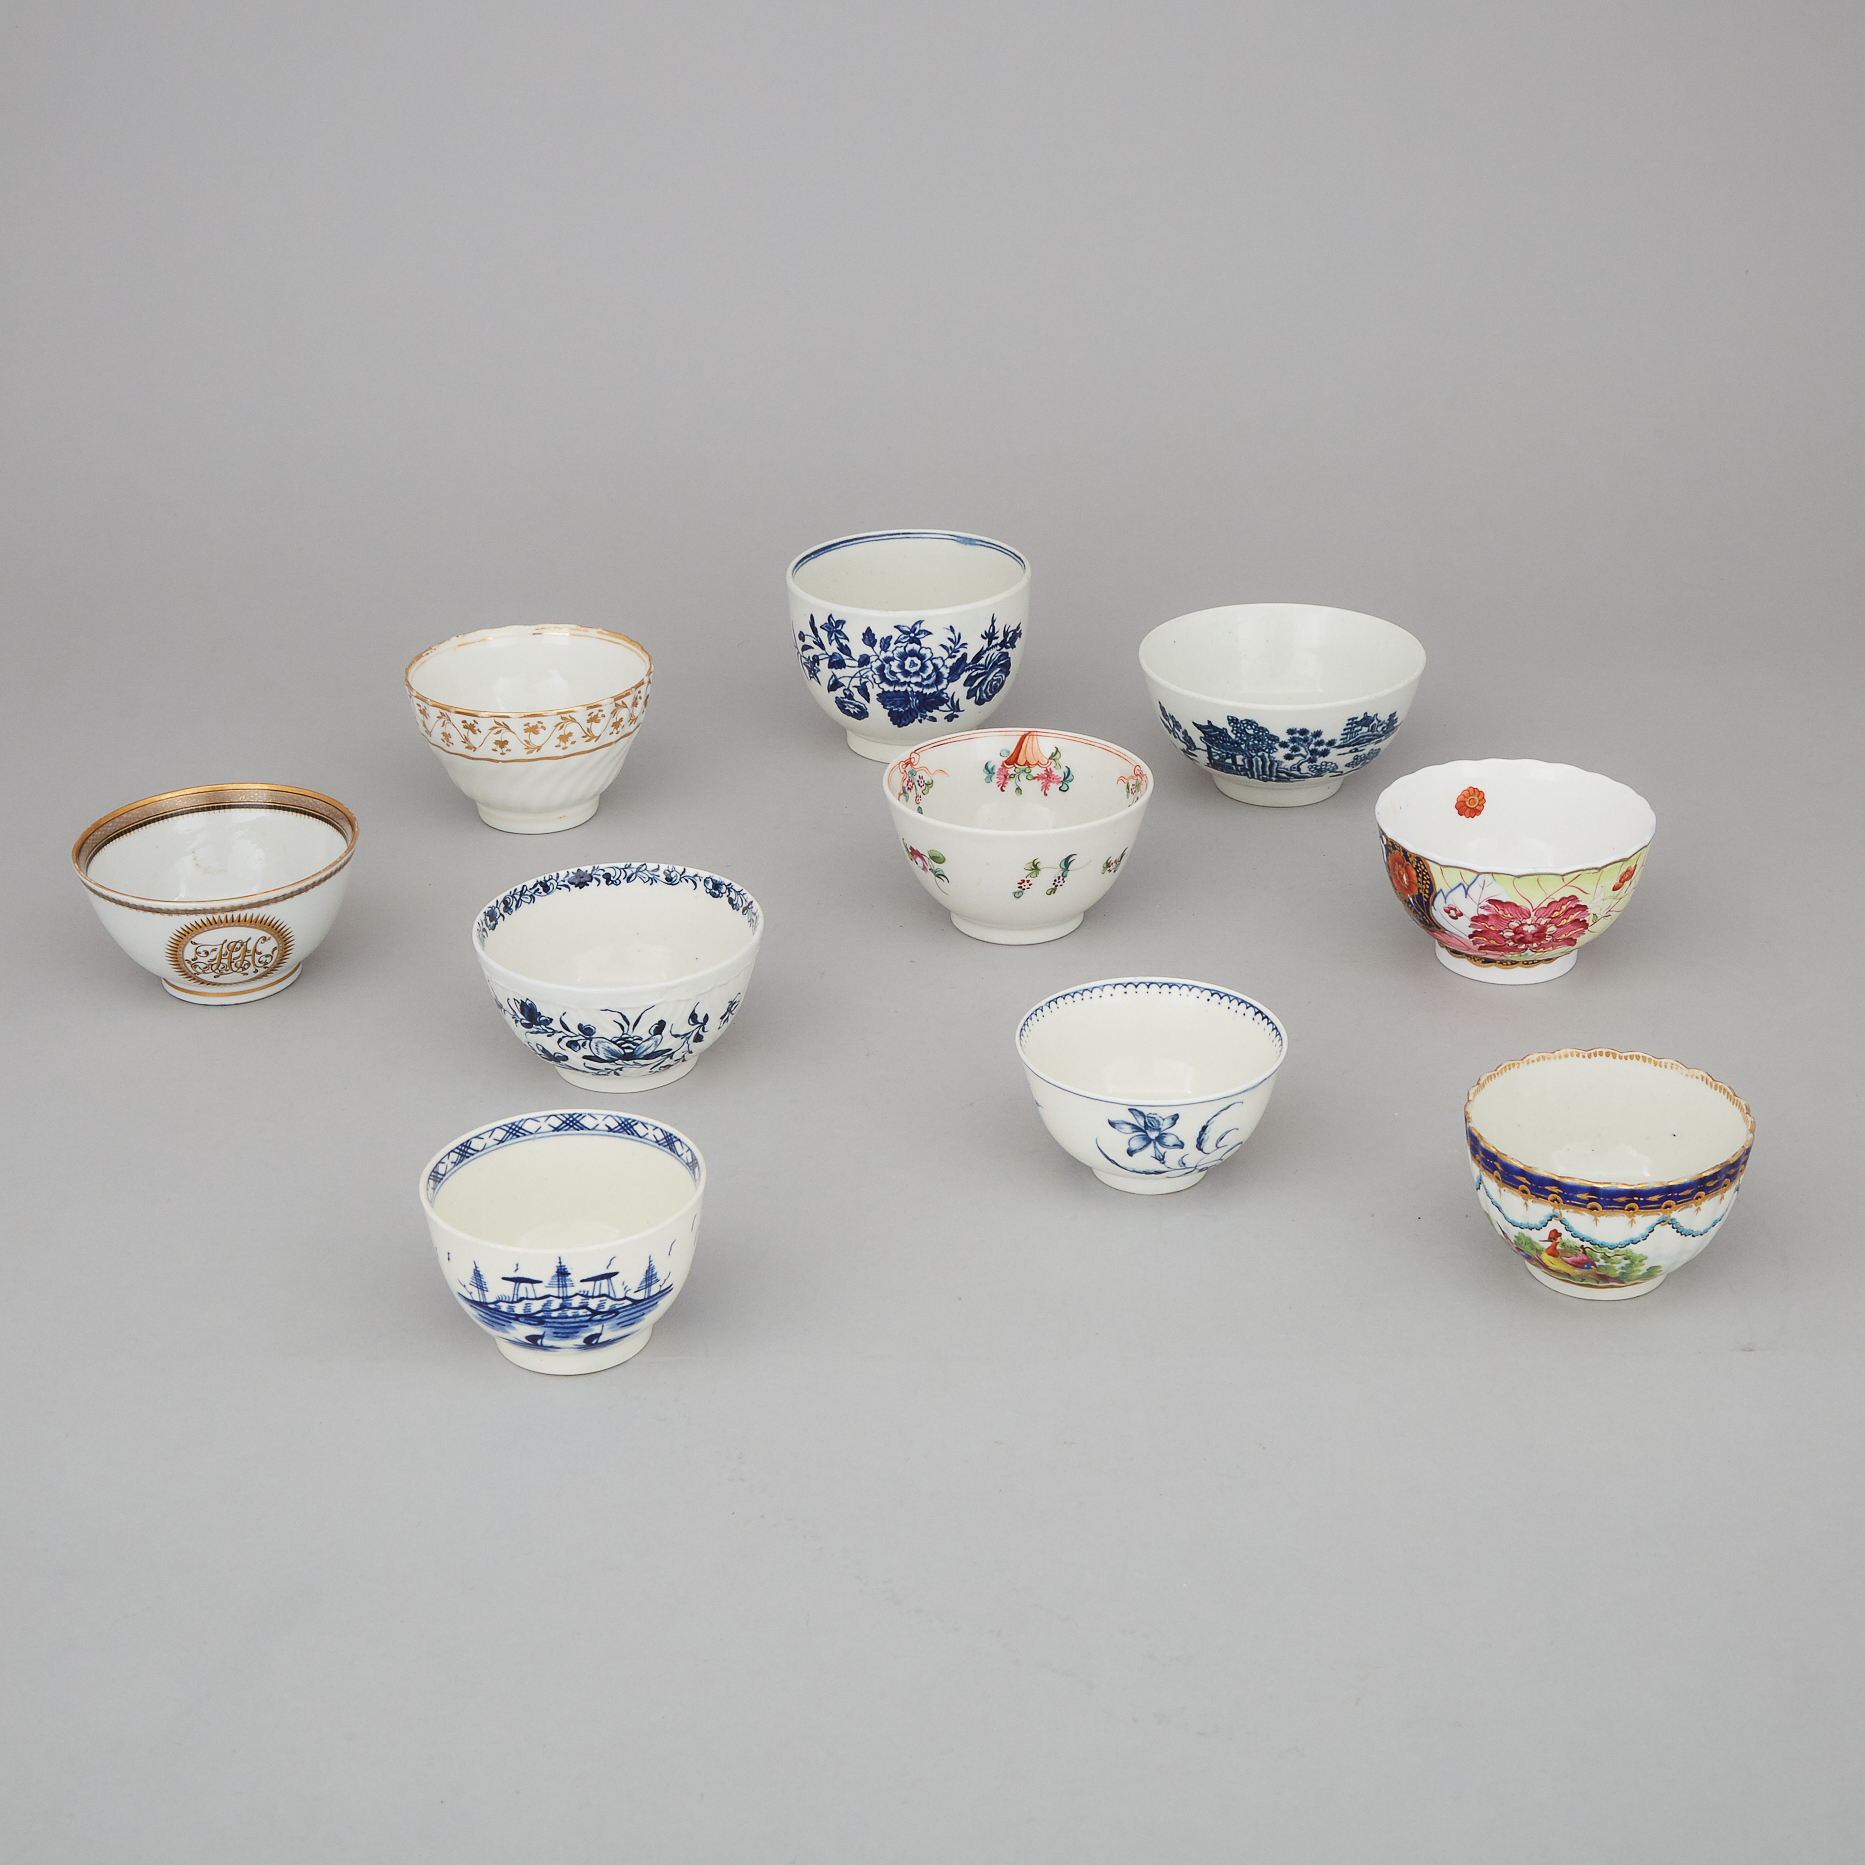 Ten Mainly English Porcelain Tea Bowls and Sugar Basins, late 18th/ early 19th century